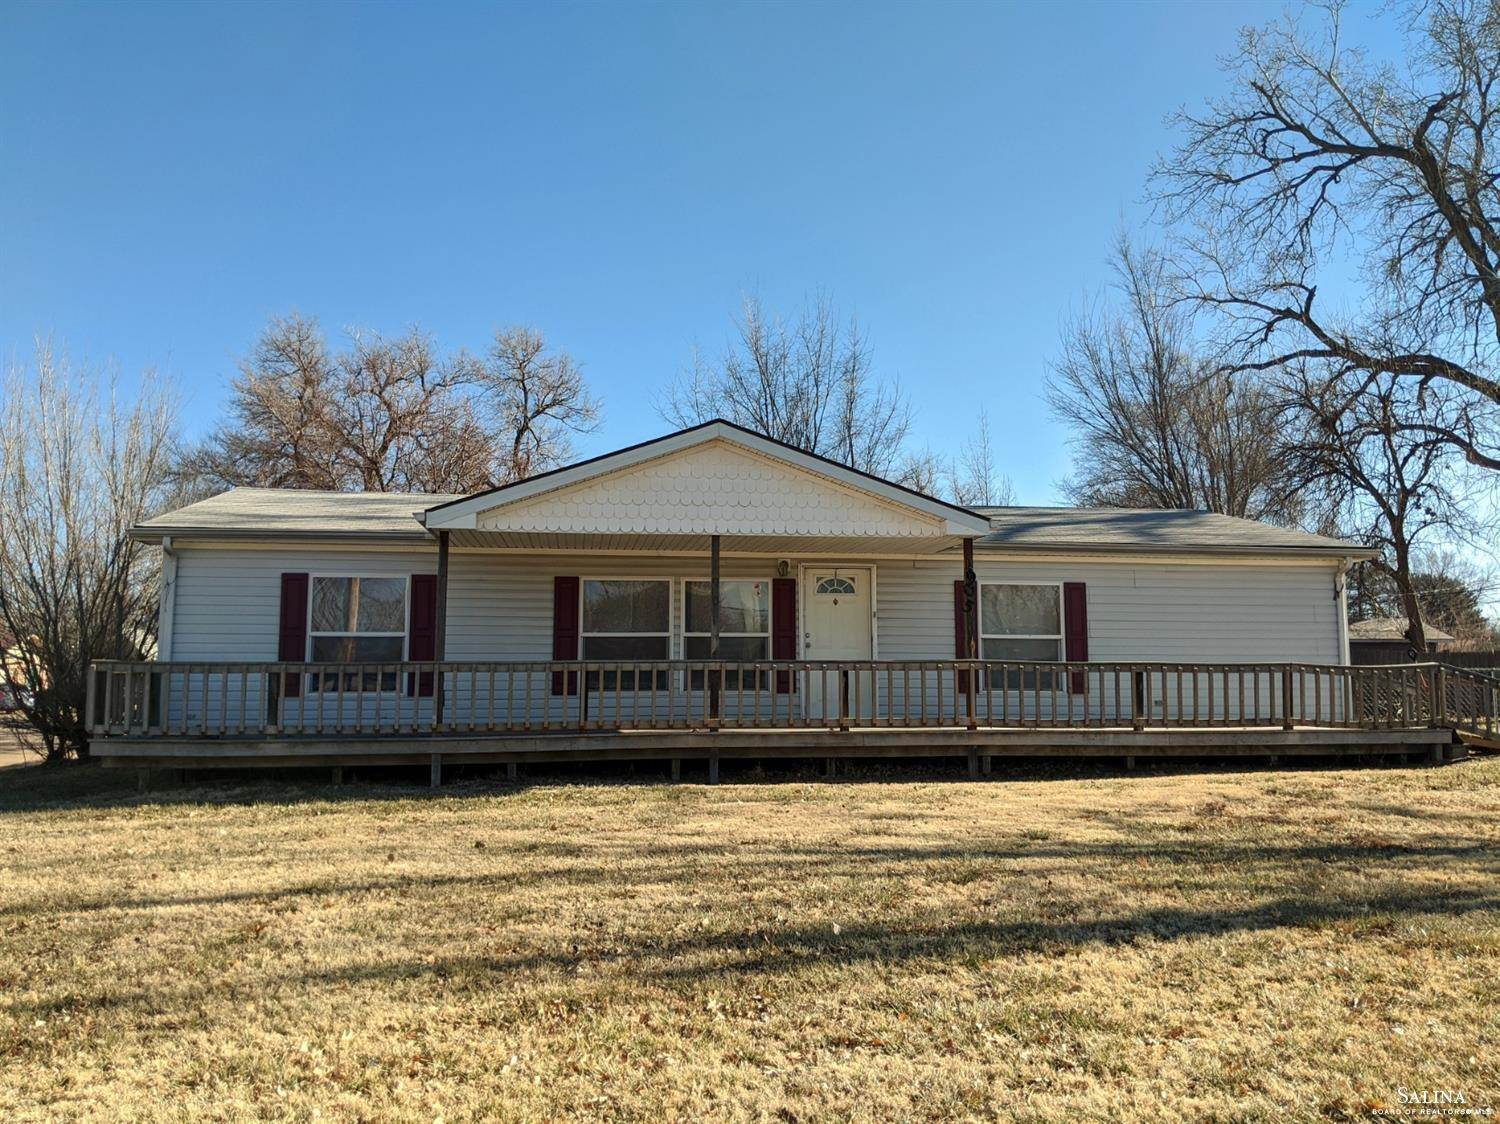 1905 Haskett Avenue, Salina, KS 67401